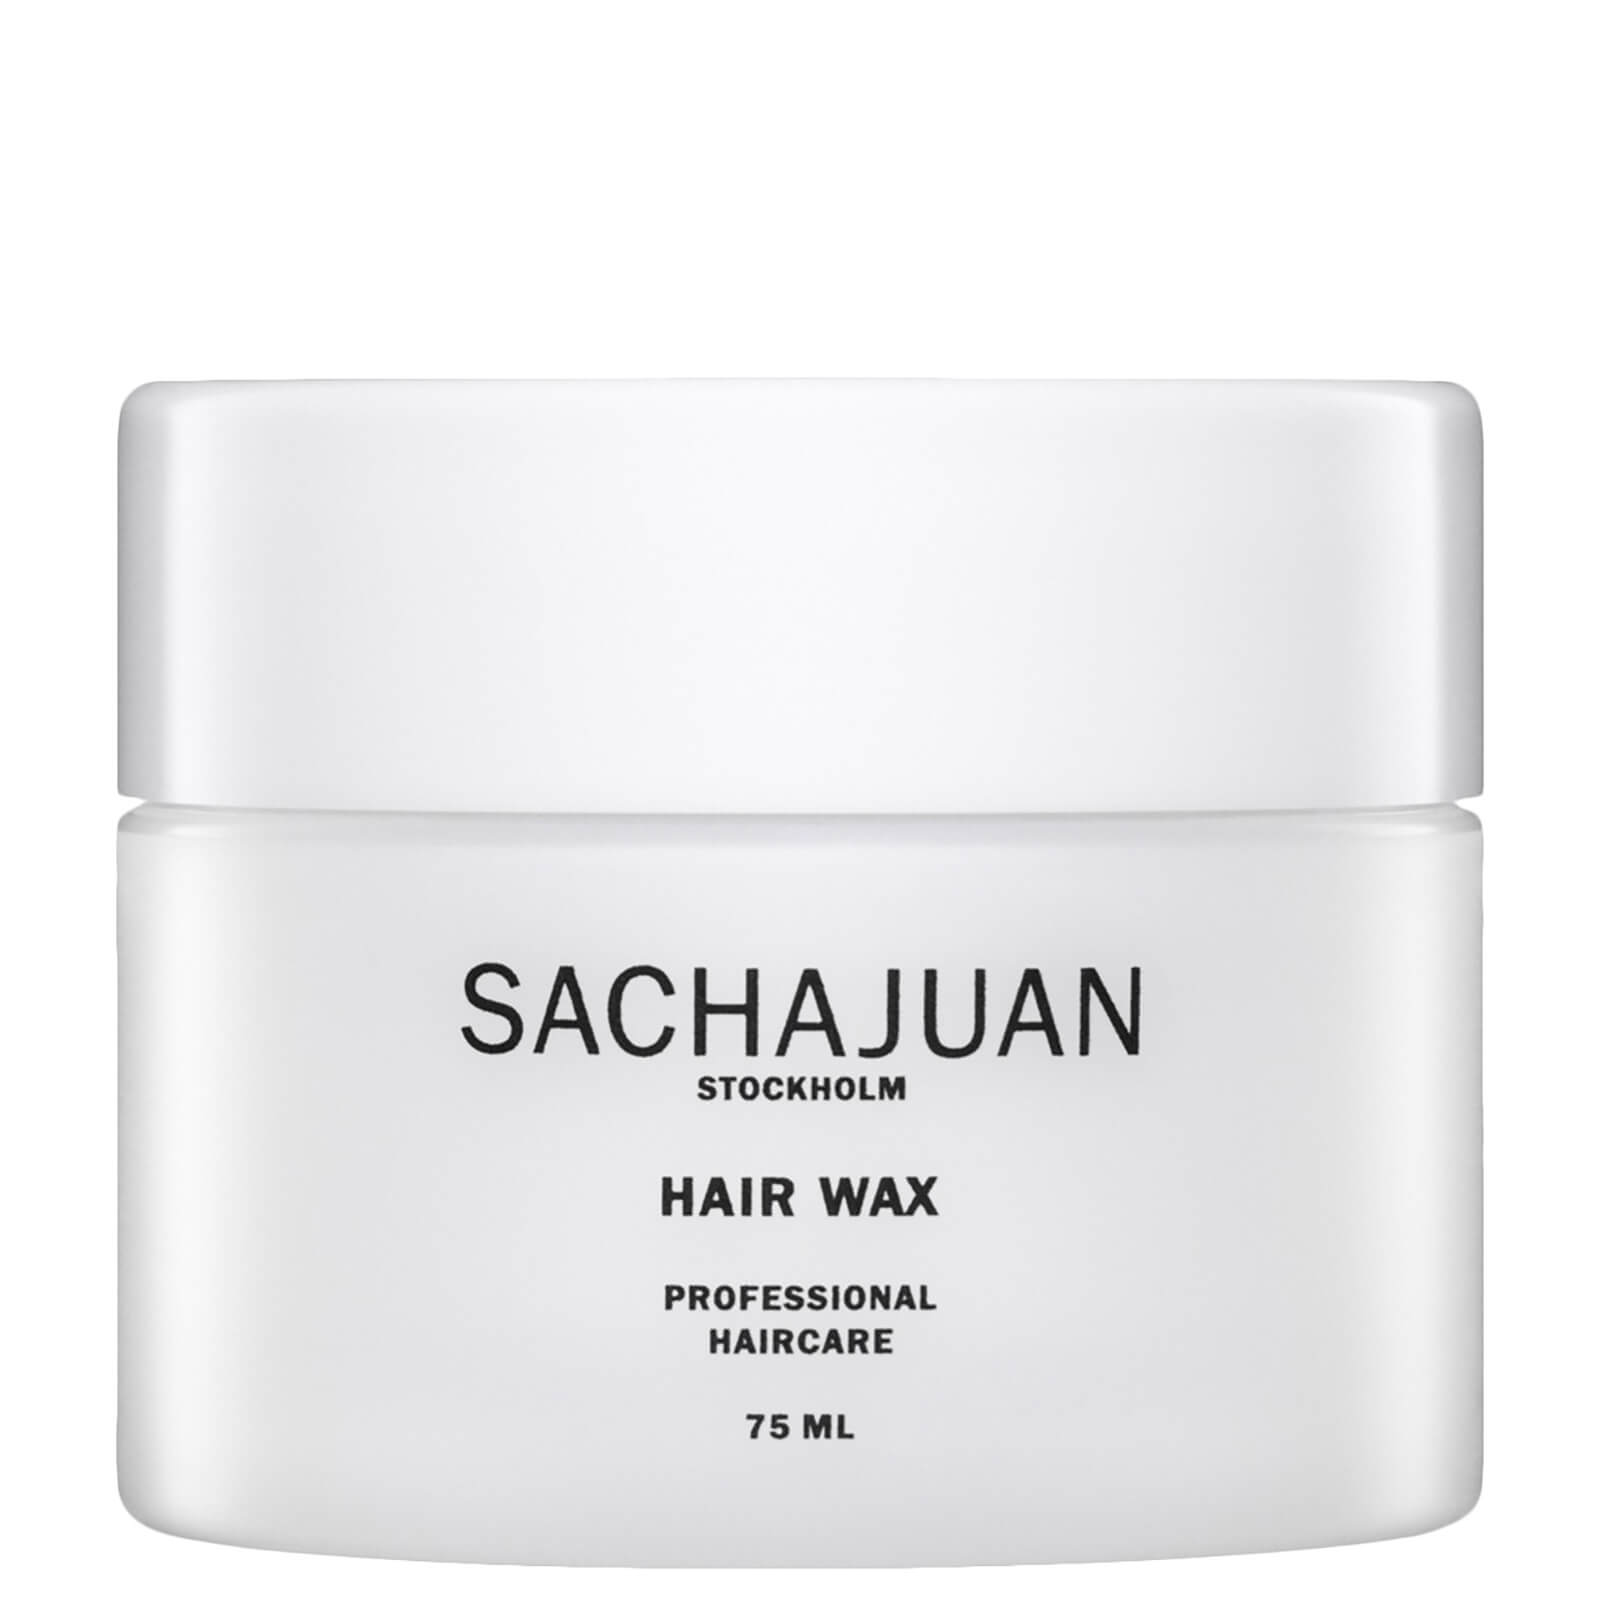 Sachajuan Hair Wax 75ml